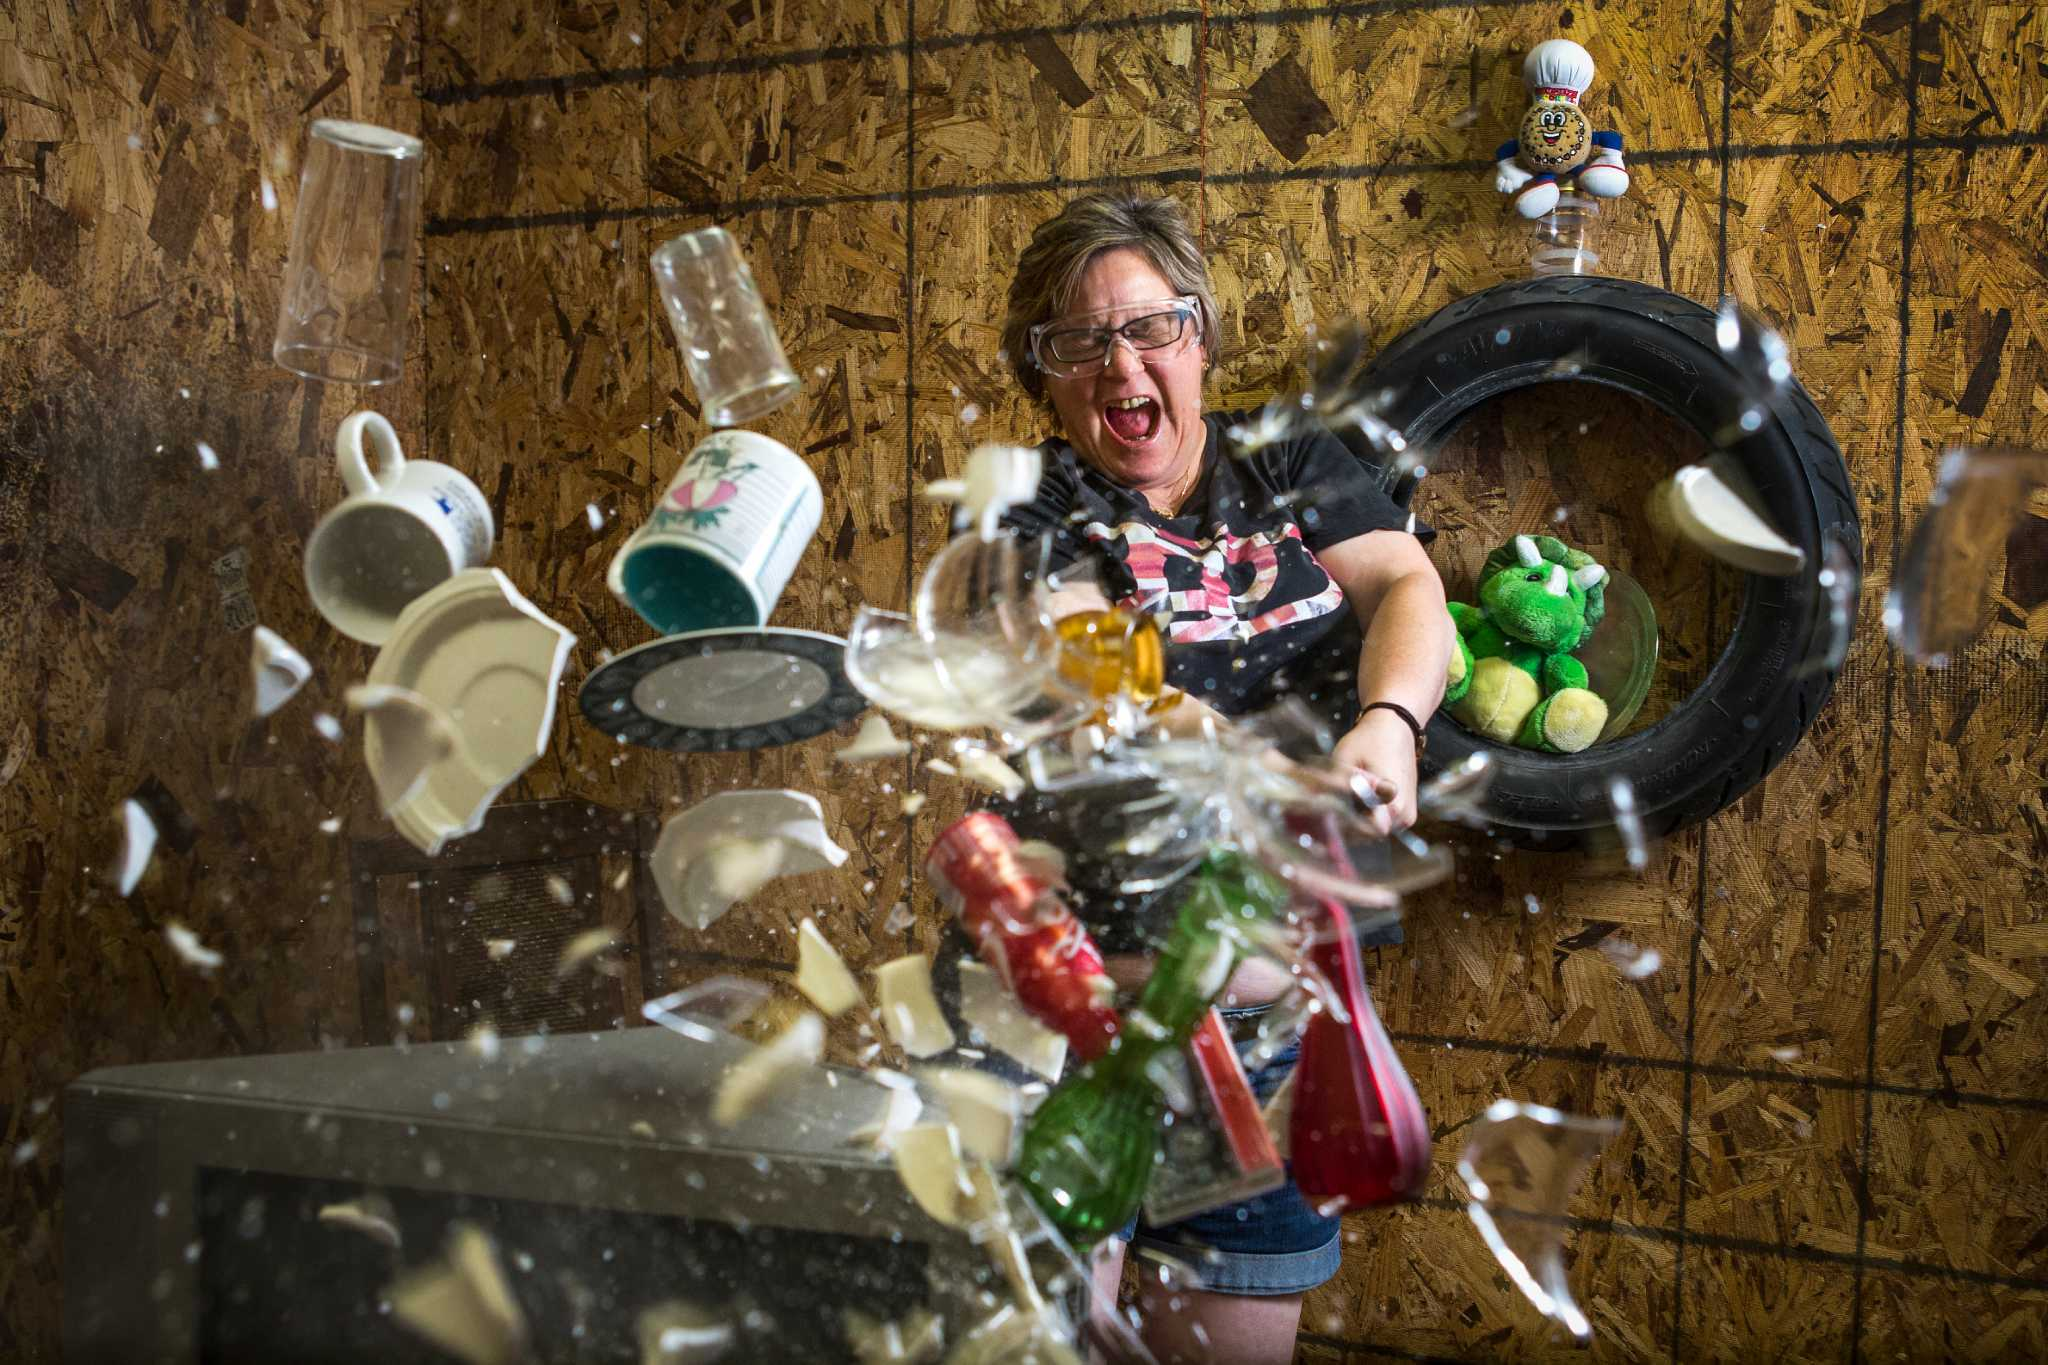 Anger Management: Smashing and Breaking Stuff to Relieve Stress and Frustration